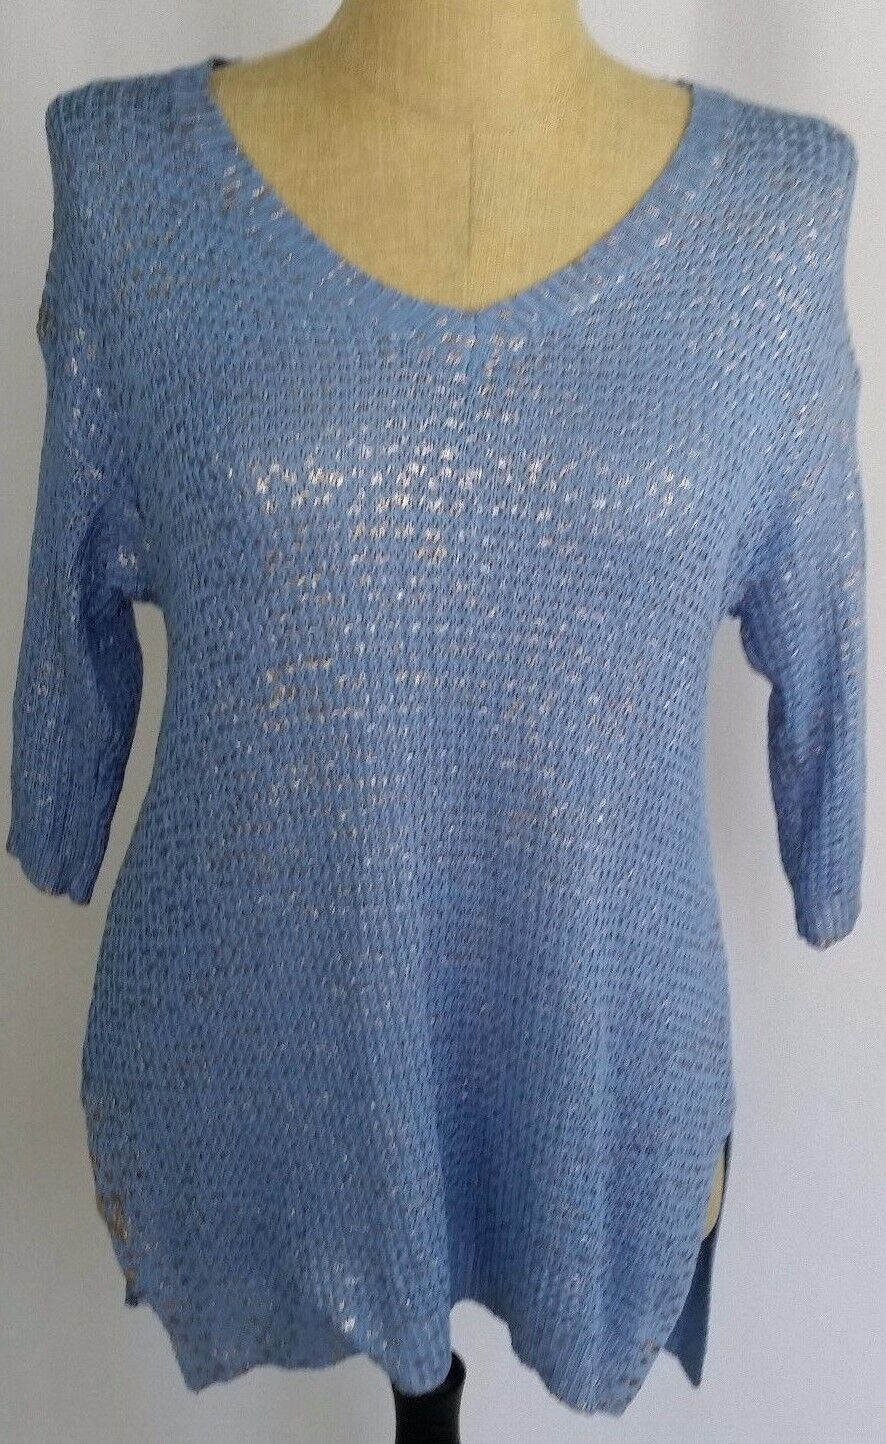 Soft Surroundings Women's Sweater bluee gold XS 3 4 Sleeve High Low NWT